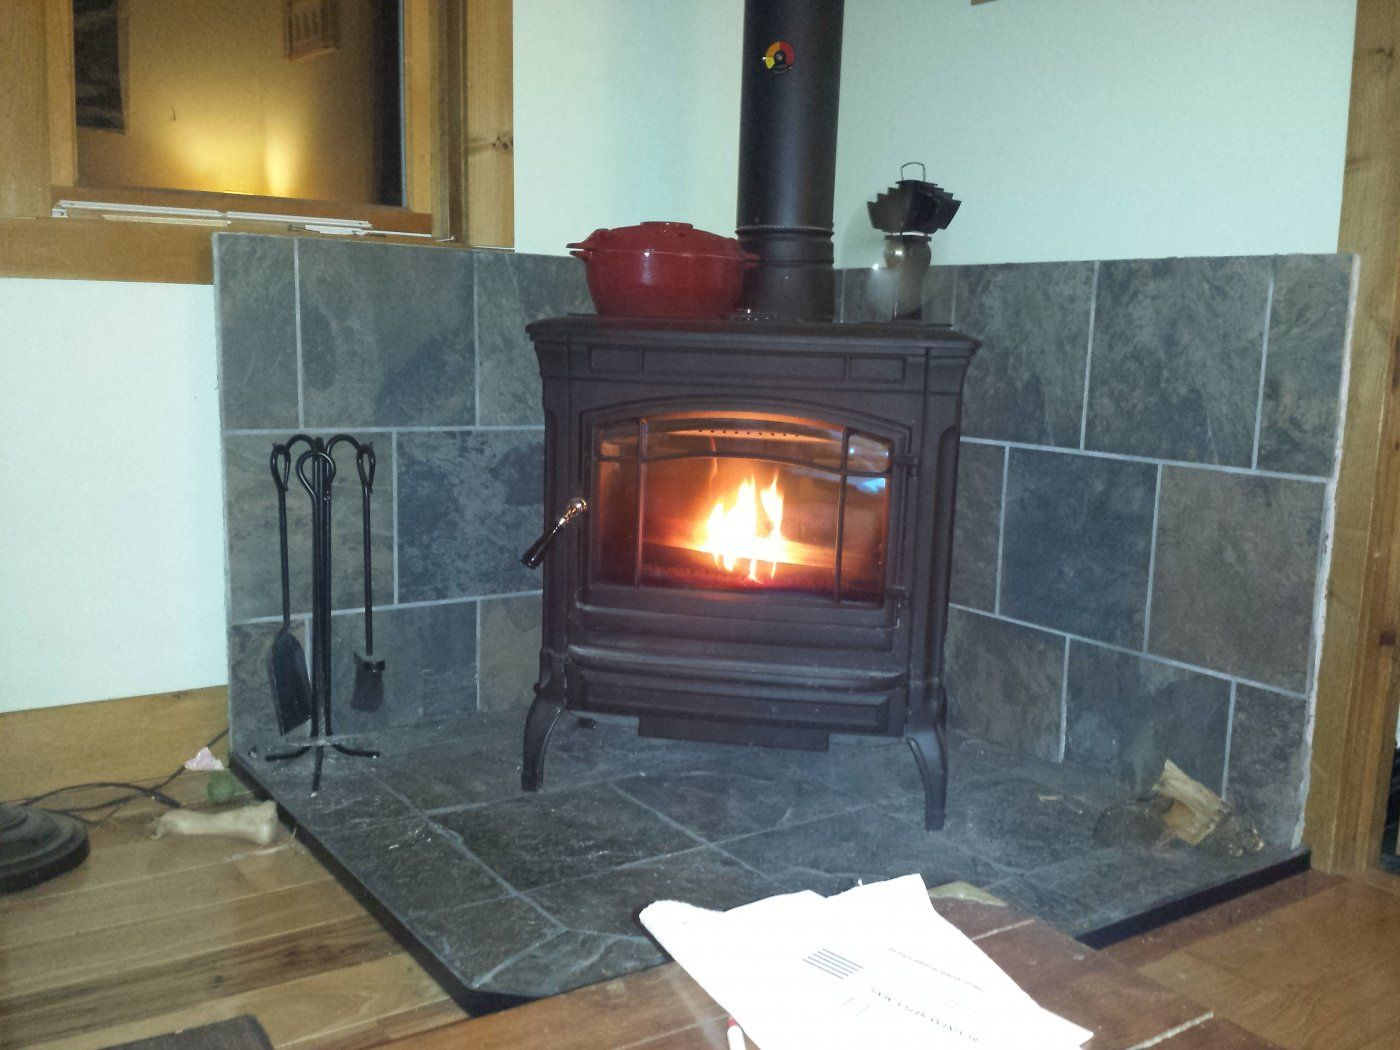 Attaching Angle Iron To Tile Hearth Com Forums Home Tiles